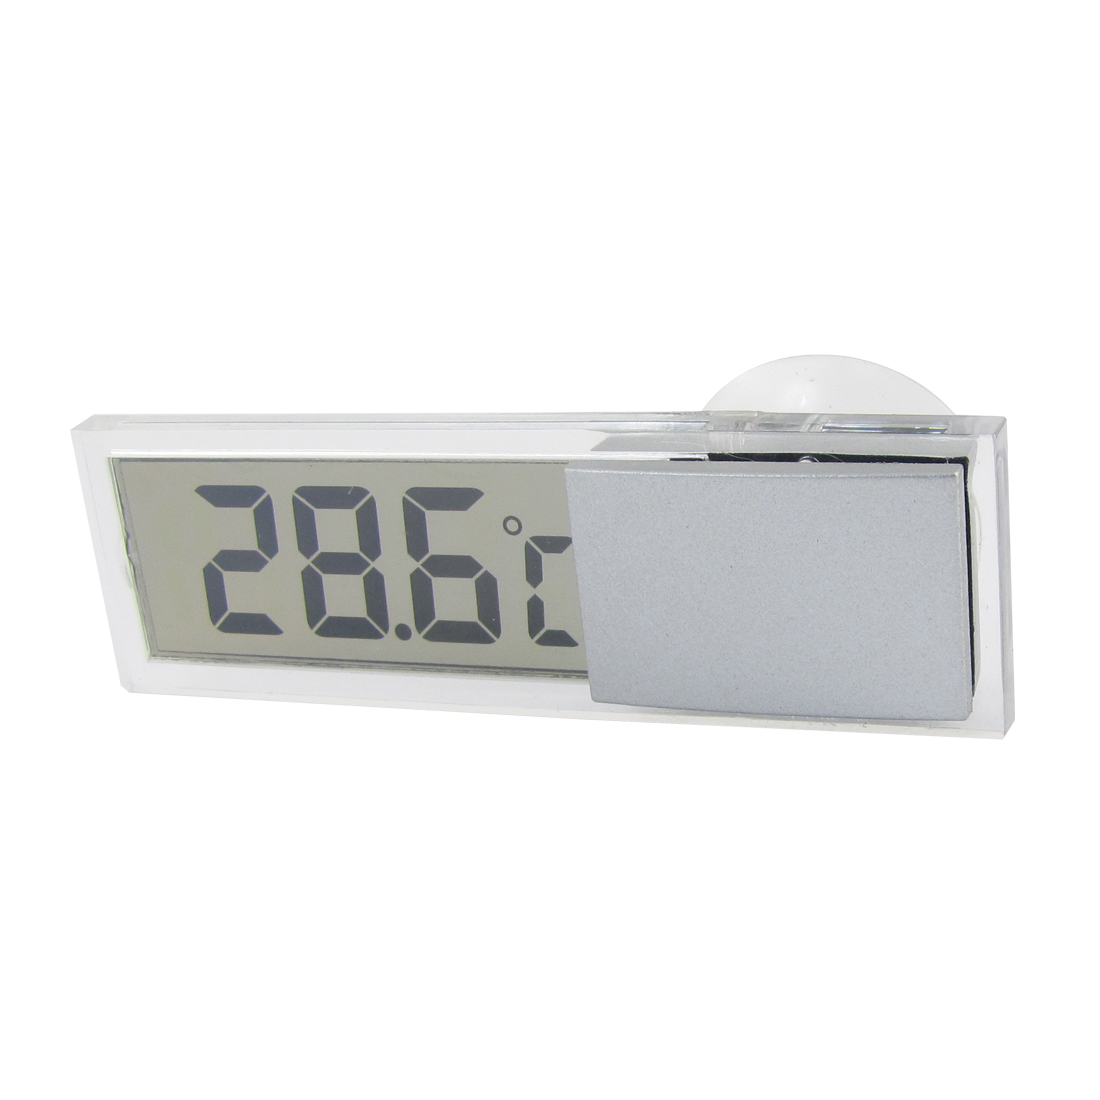 Truck Car Gray Plastic Casing Suction Cup Clear LCD Display Thermometer